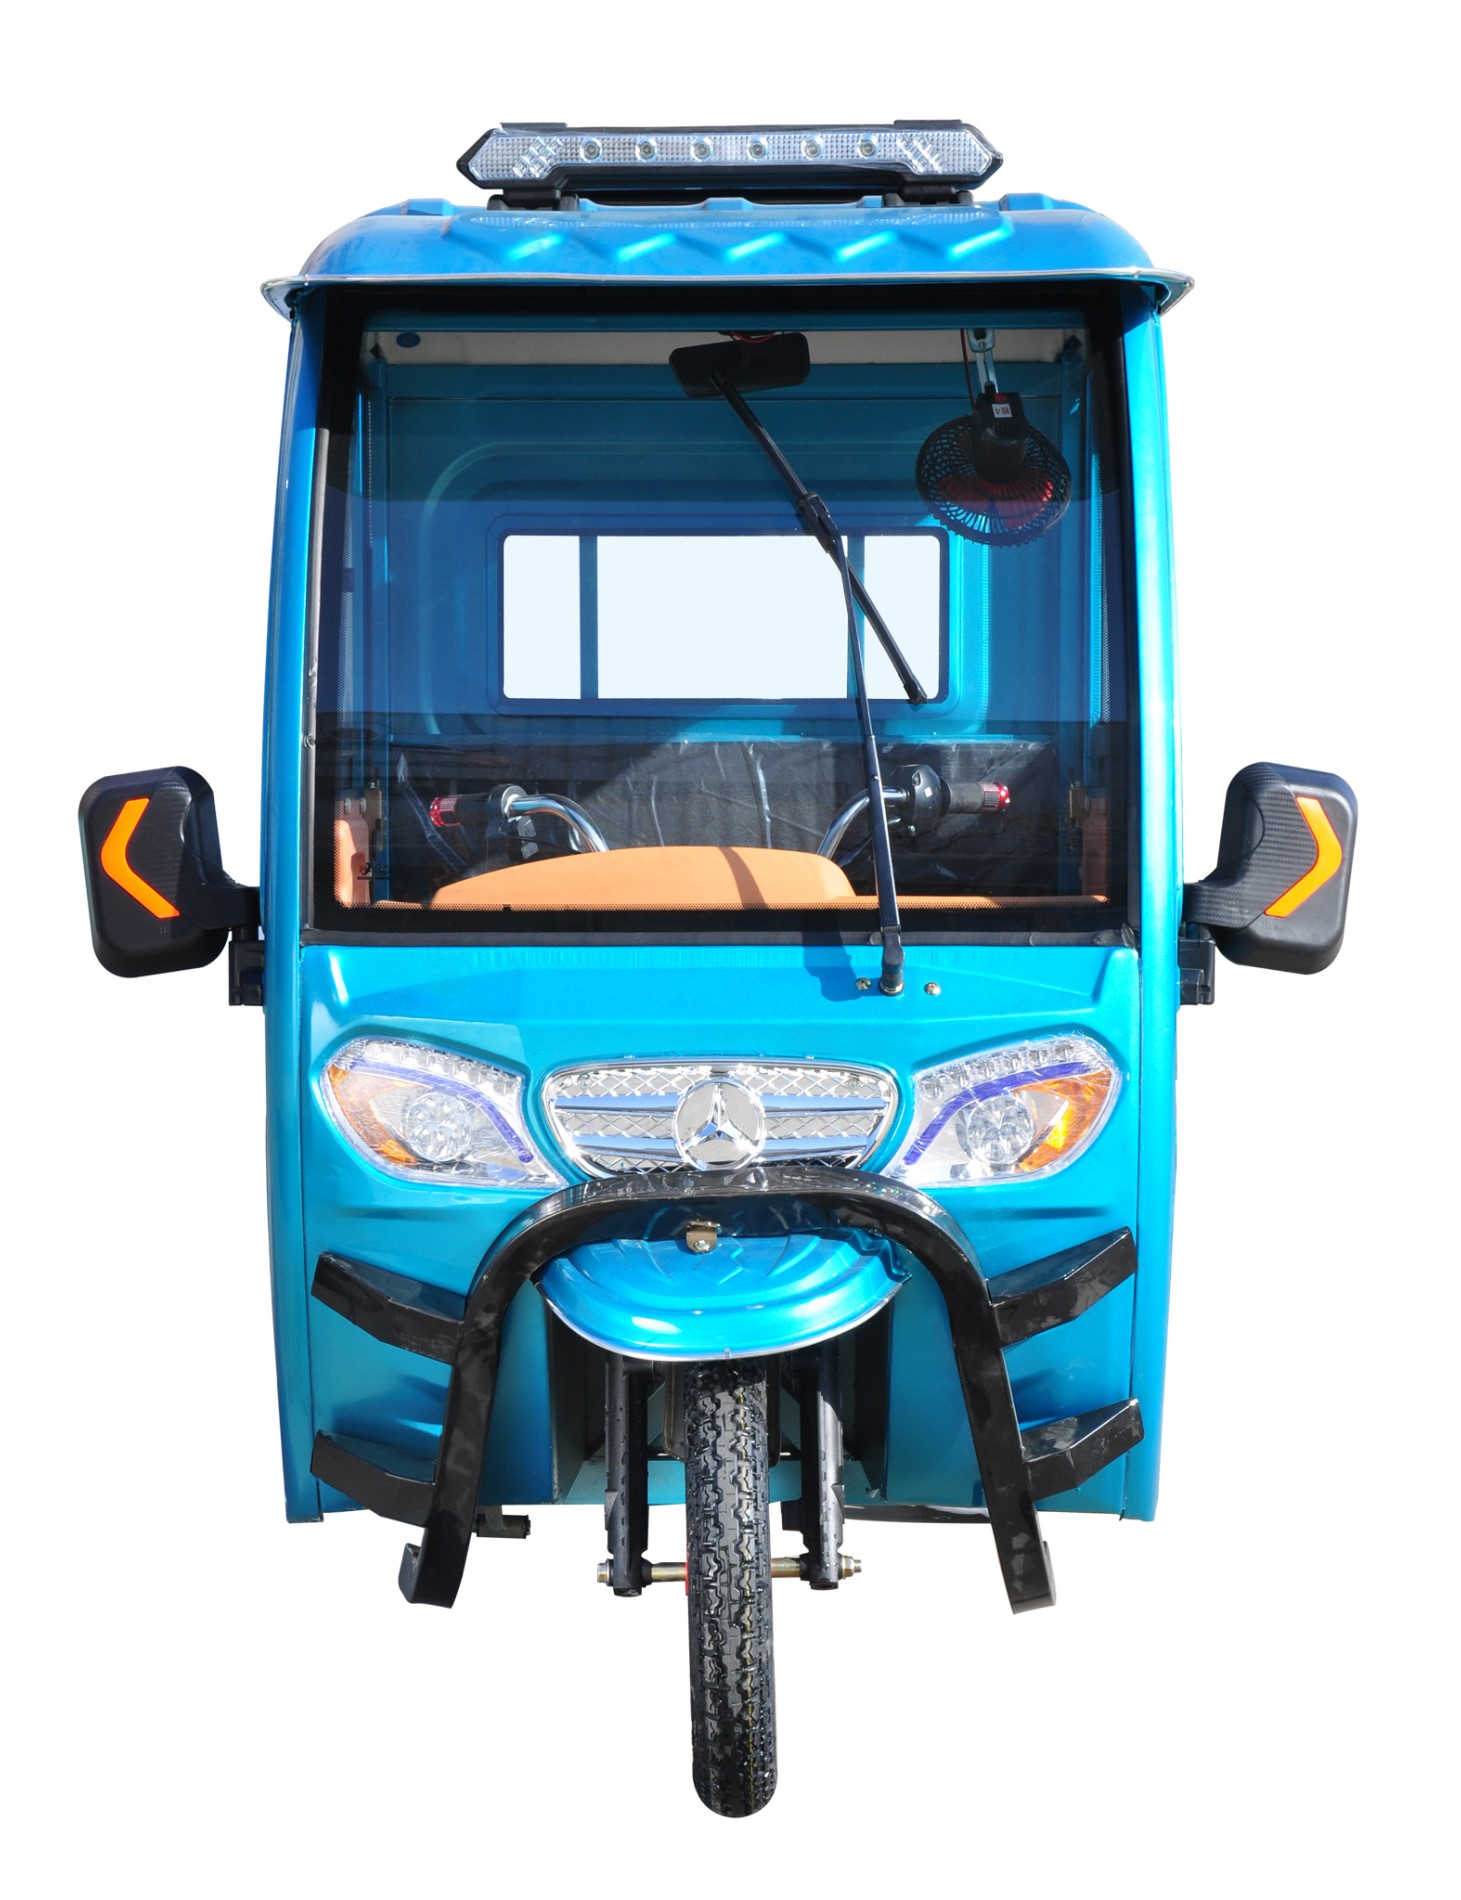 High quality Electric Tricycle With Cabin and Passenger Seat Quotes,China Electric Tricycle With Cabin and Passenger Seat Factory,Electric Tricycle With Cabin and Passenger Seat Purchasing